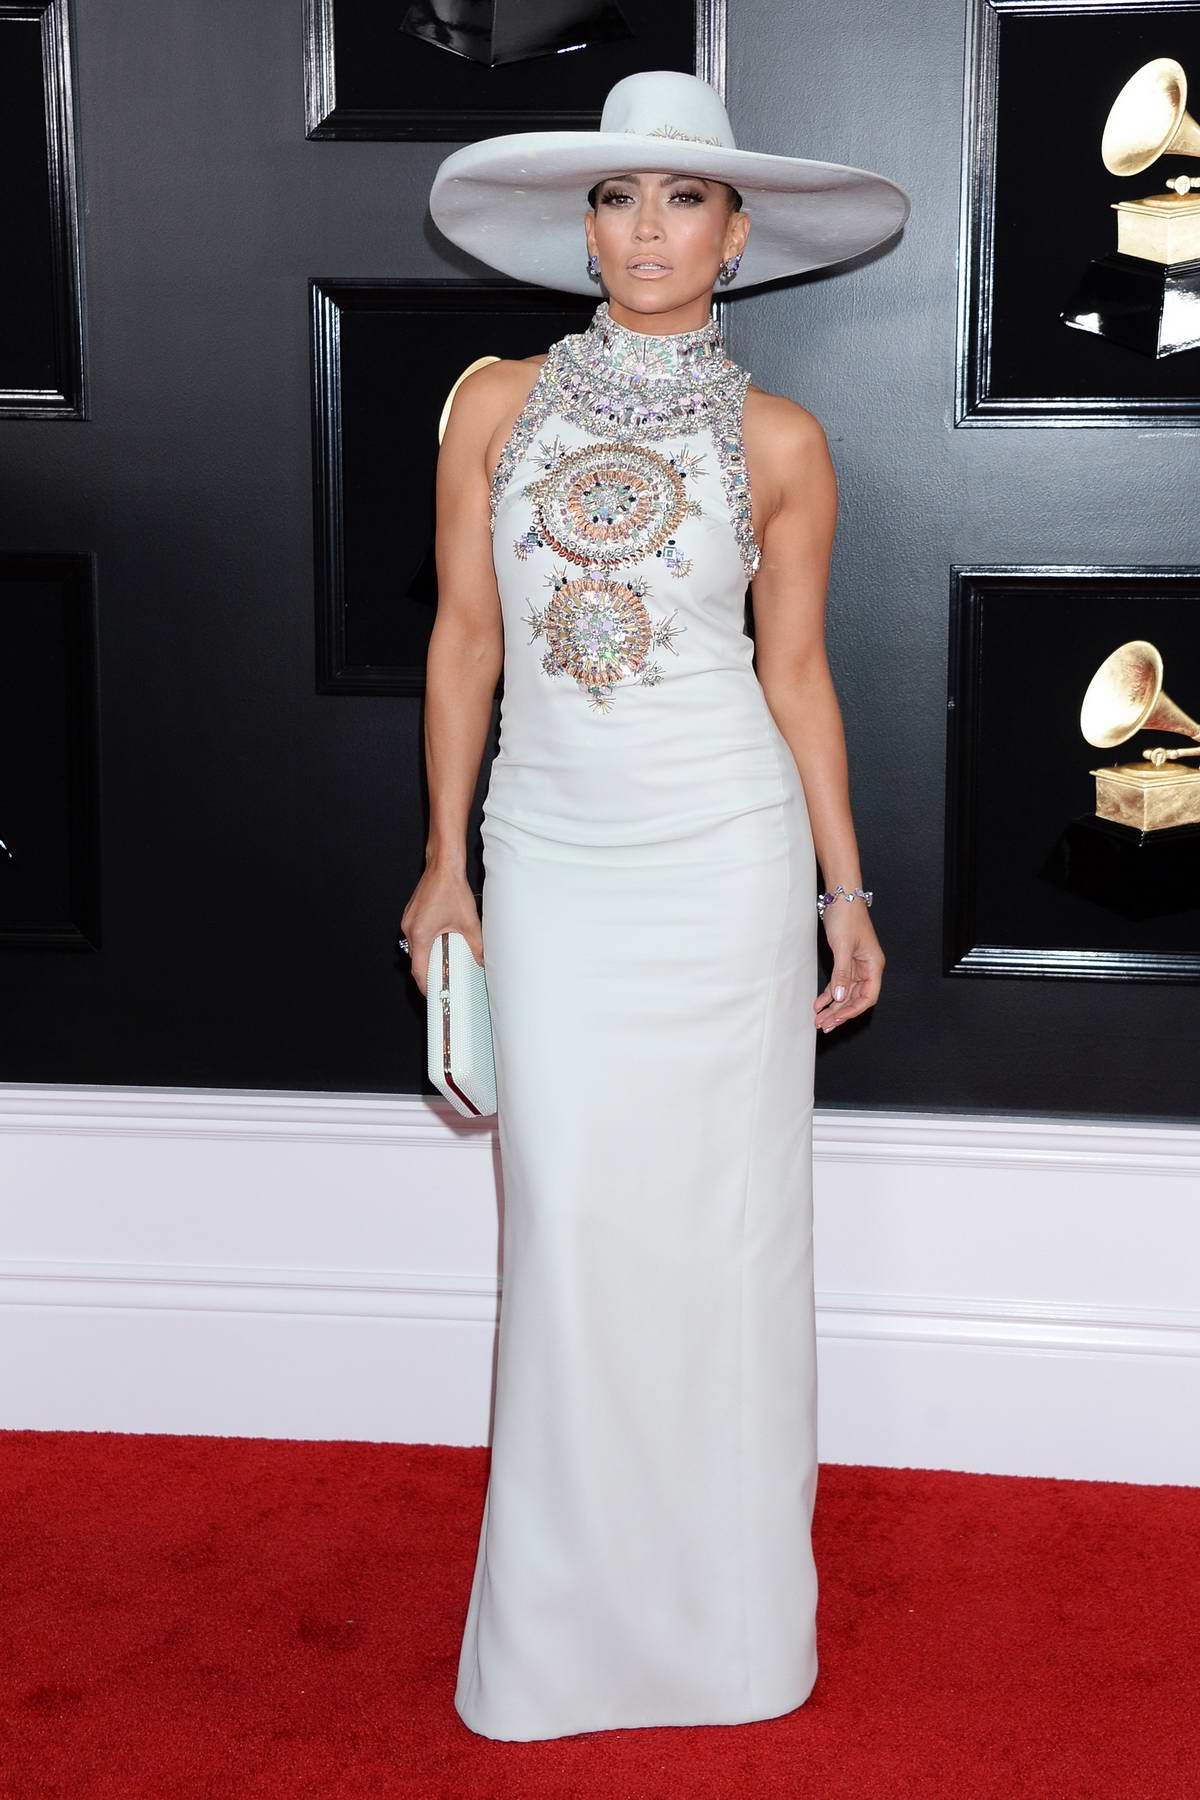 Jennifer Lopez attends the 61st Annual GRAMMY Awards (2019 GRAMMYs) at Staples Center in Los Angeles